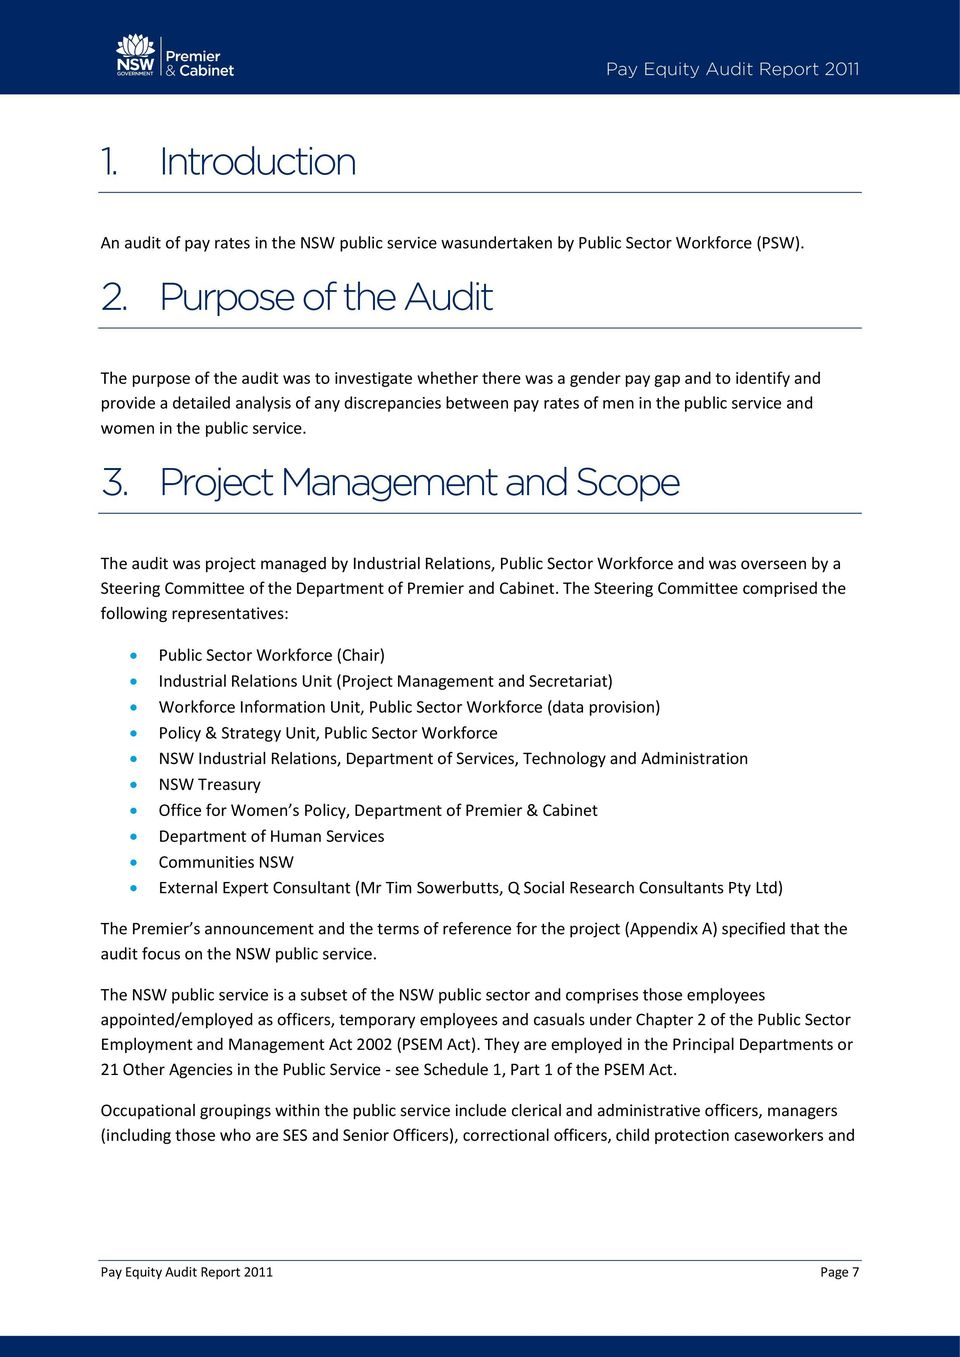 Purpose of the Audit The purpose of the audit was to investigate whether there was a gender pay gap and to identify and provide a detailed analysis of any discrepancies between pay rates of men in